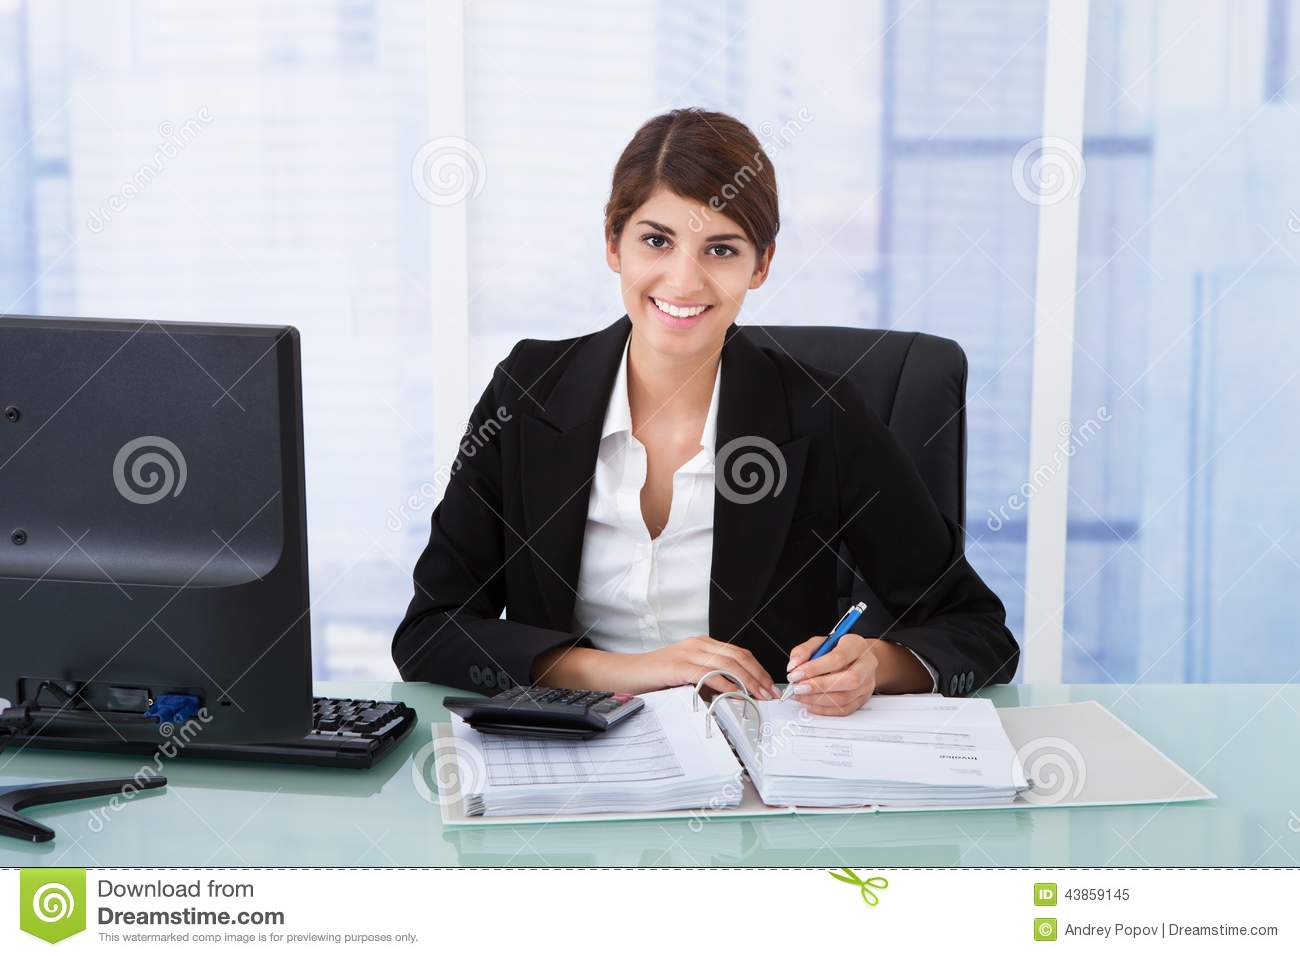 Confident businesswoman using calculator at office desk